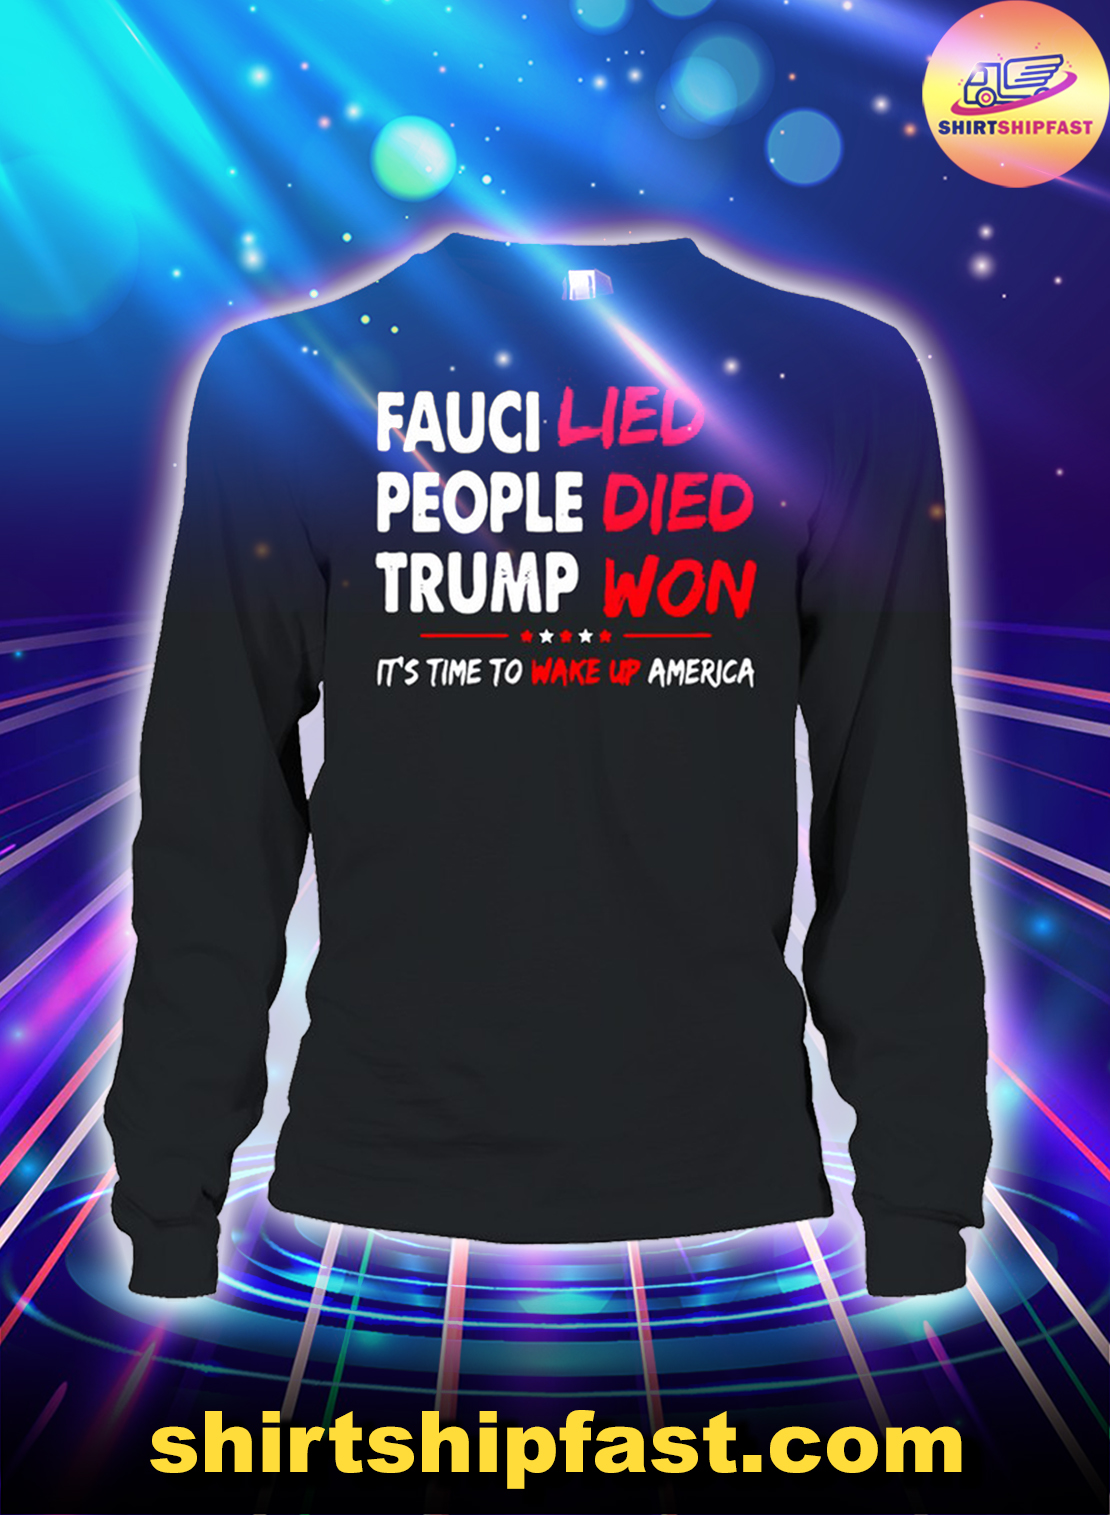 Fauci lied people died Trump won It's time to wake up America long sleeve tee